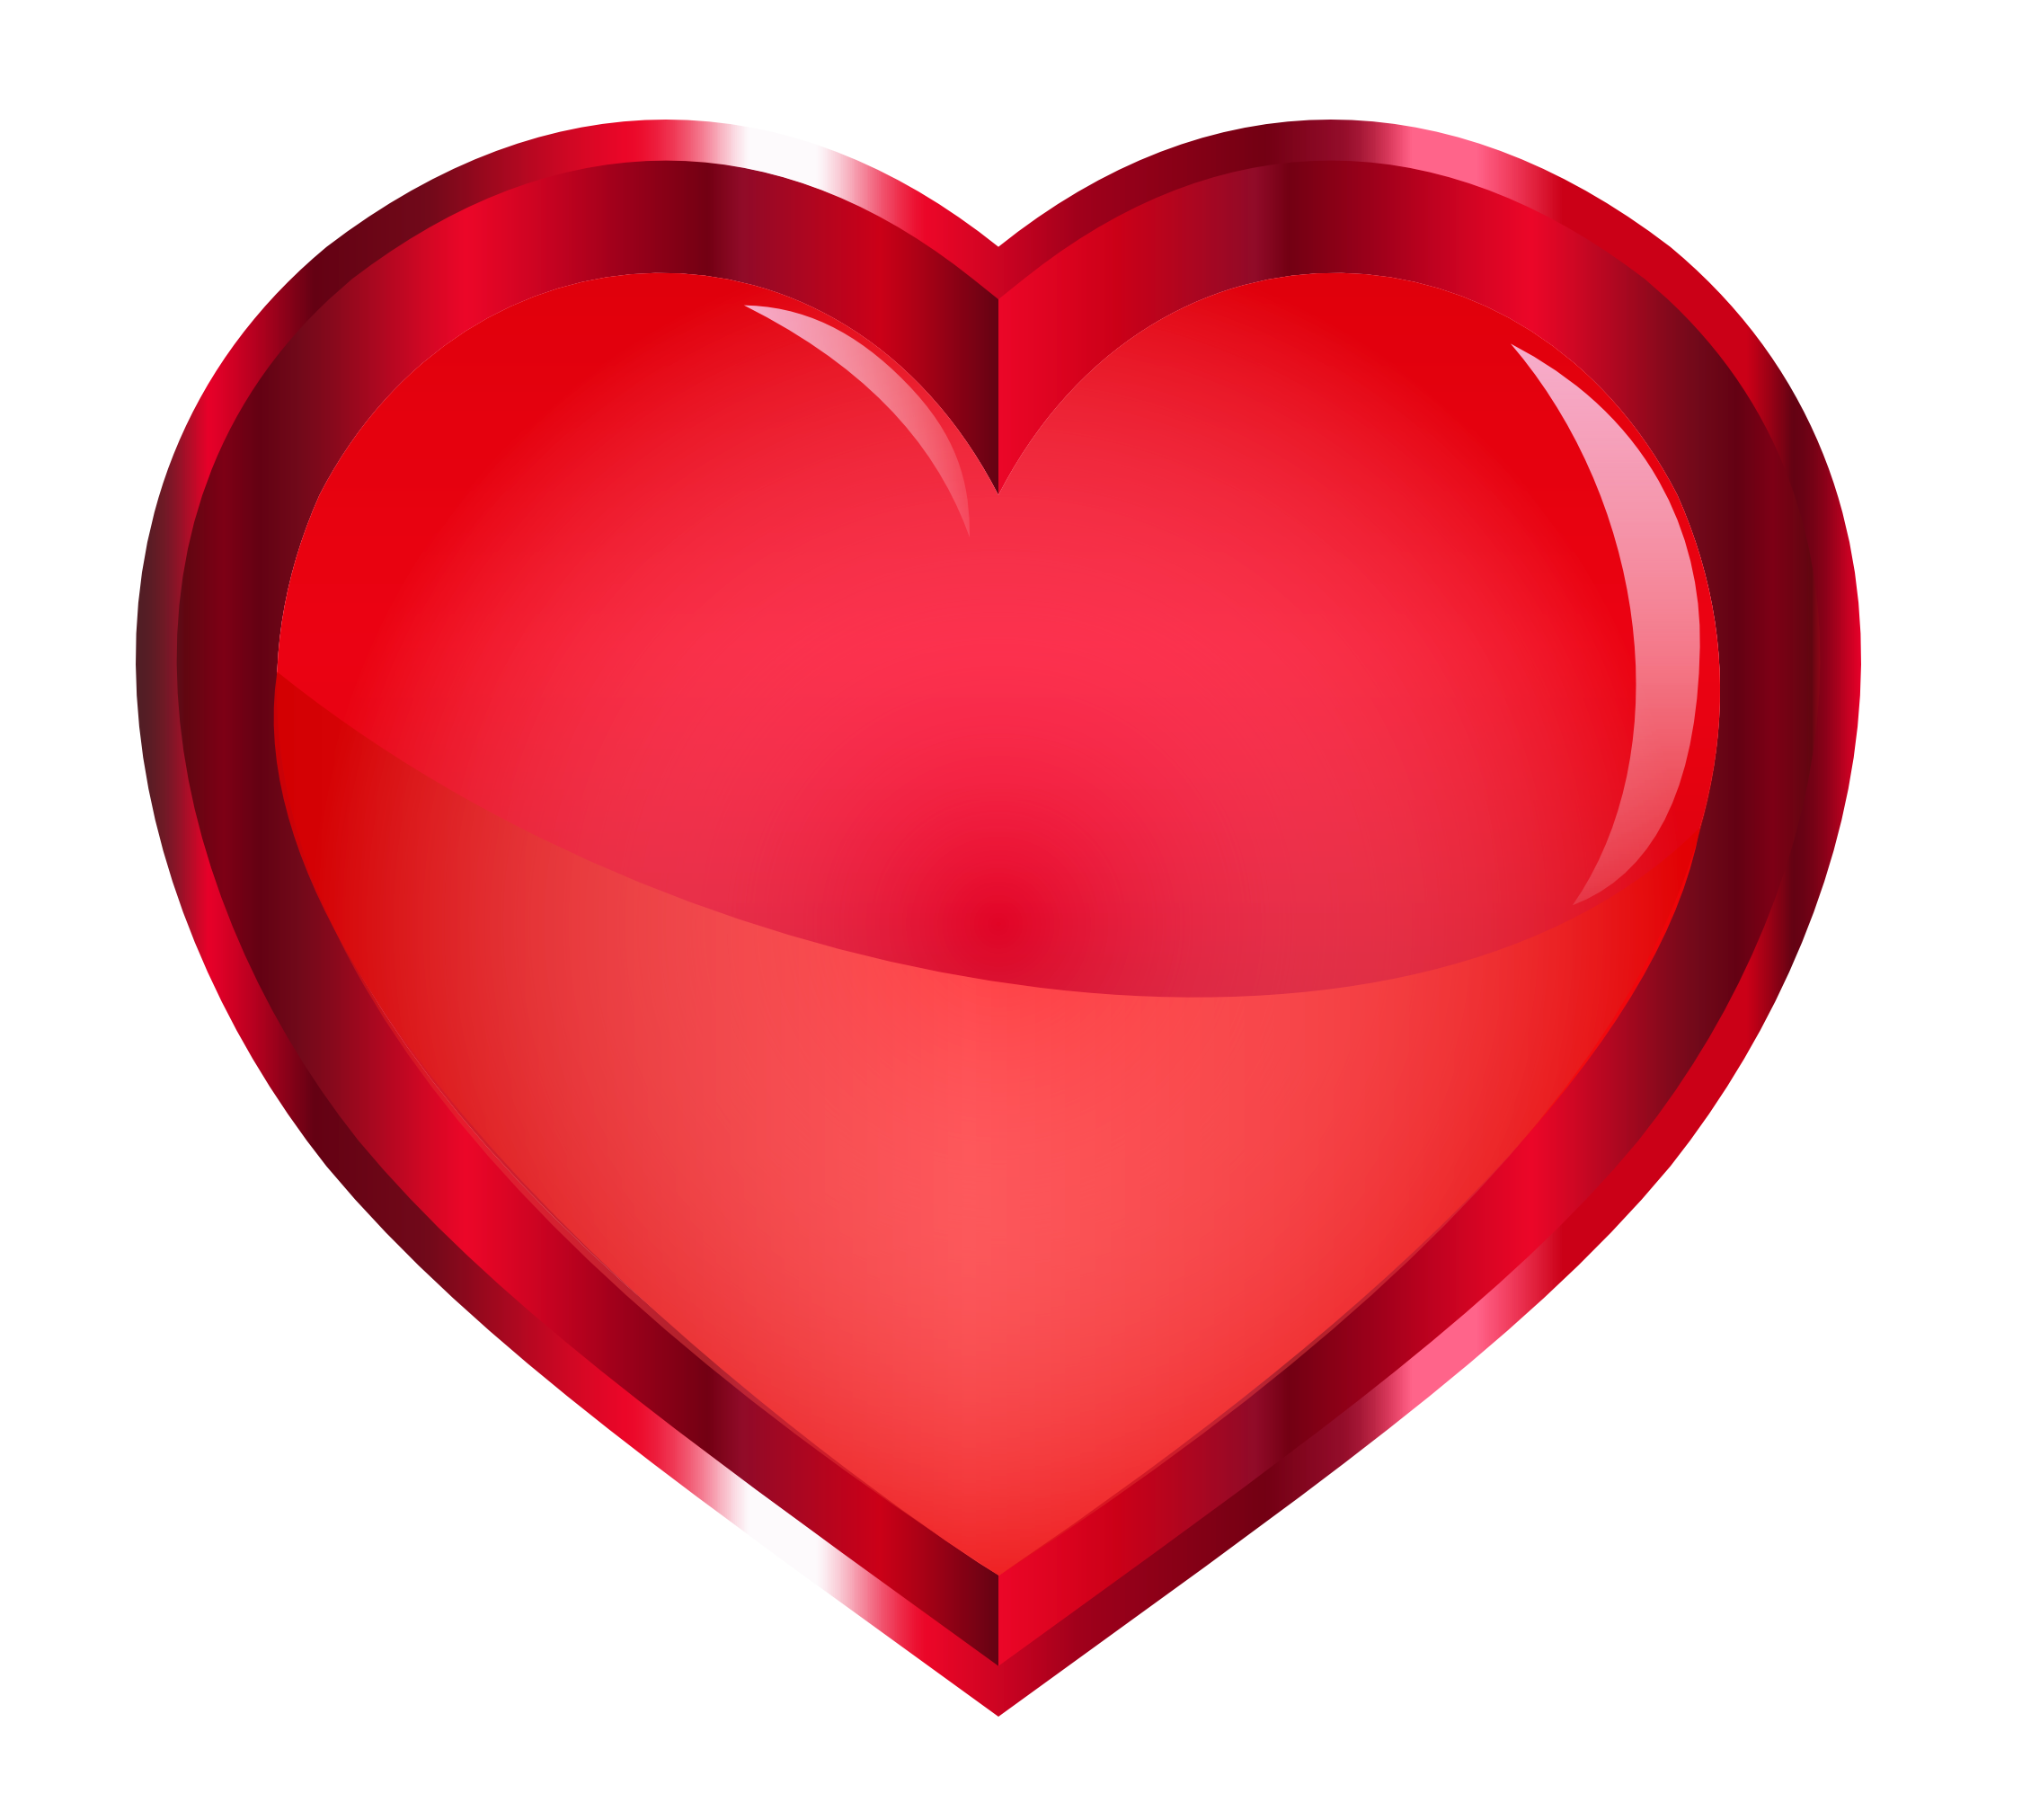 Pure heart clipart graphic free stock Red Heart PNG Image - PurePNG | Free transparent CC0 PNG Image Library graphic free stock